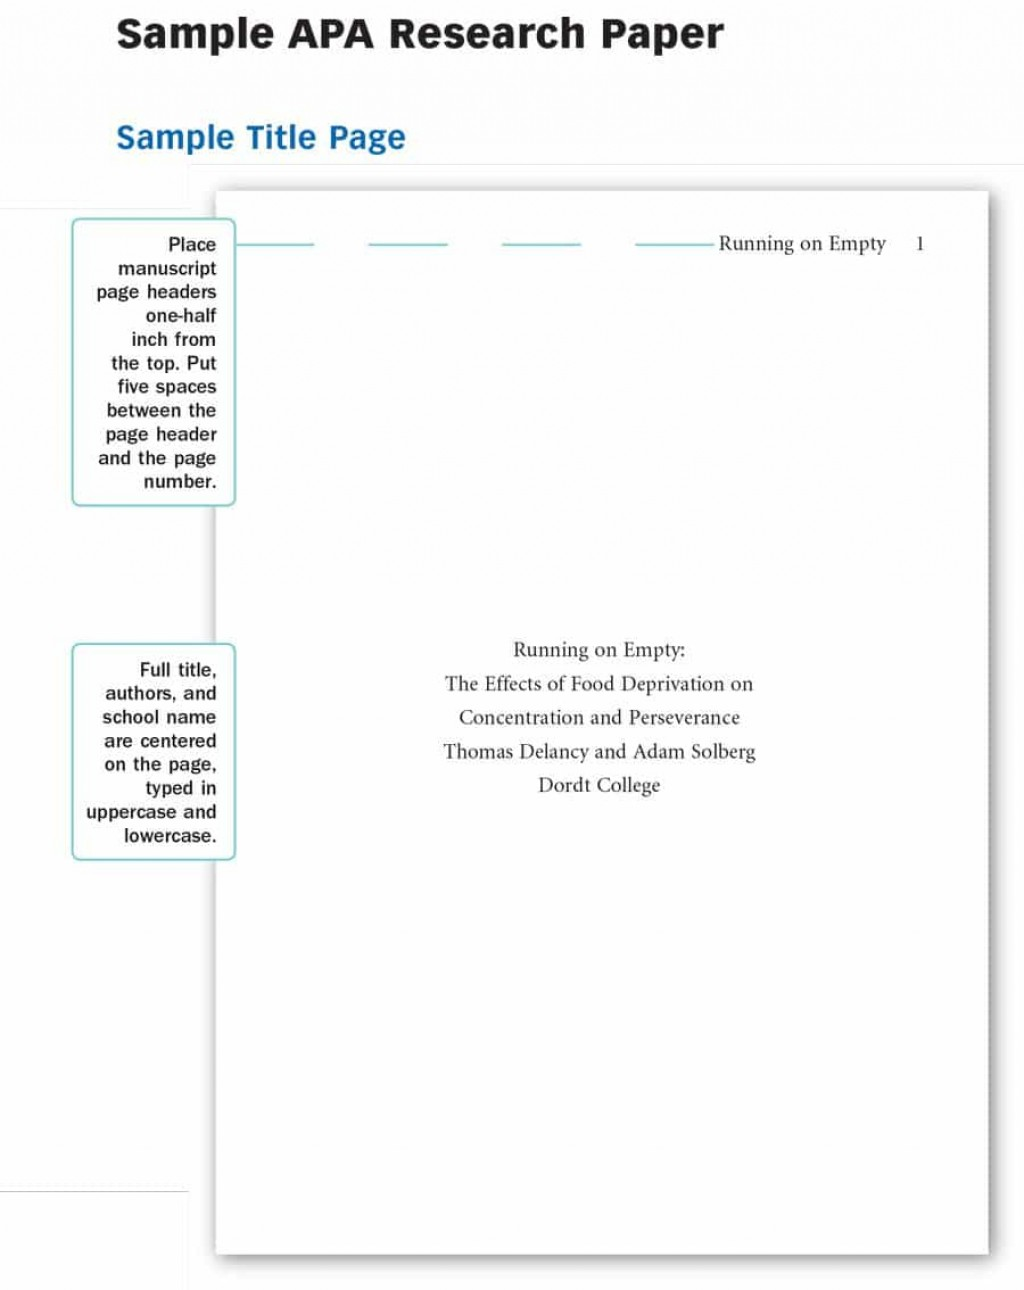 023 Research Paper Apa Template Style Guide For Writing Best Papers Large